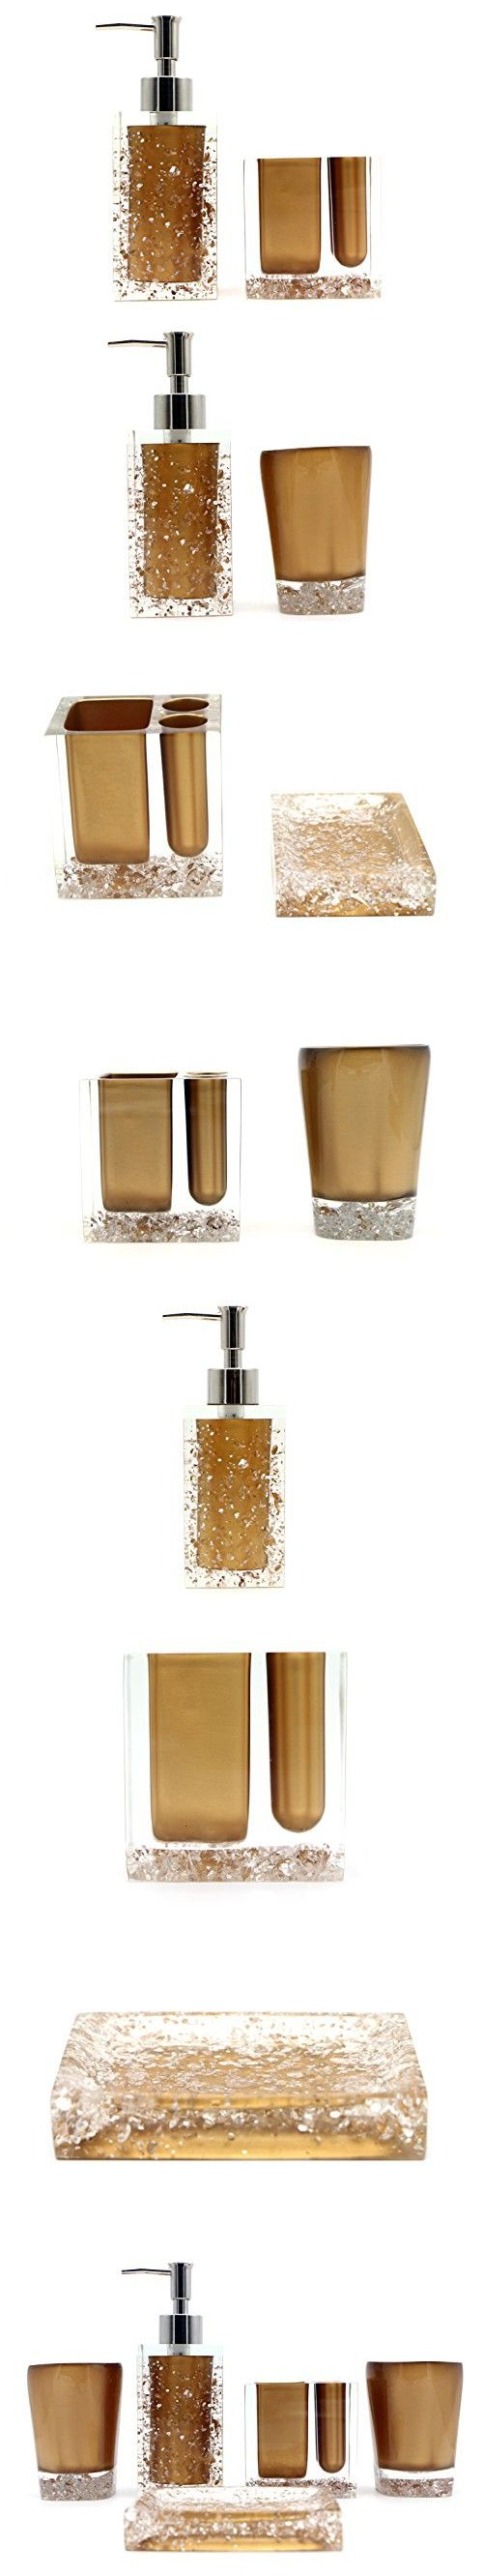 Hot San Resin 5 Pieces Bathroom Accessory Set - Ice Crystal In Gold Design Ensemble,Bathroom Vanities,Home Decor